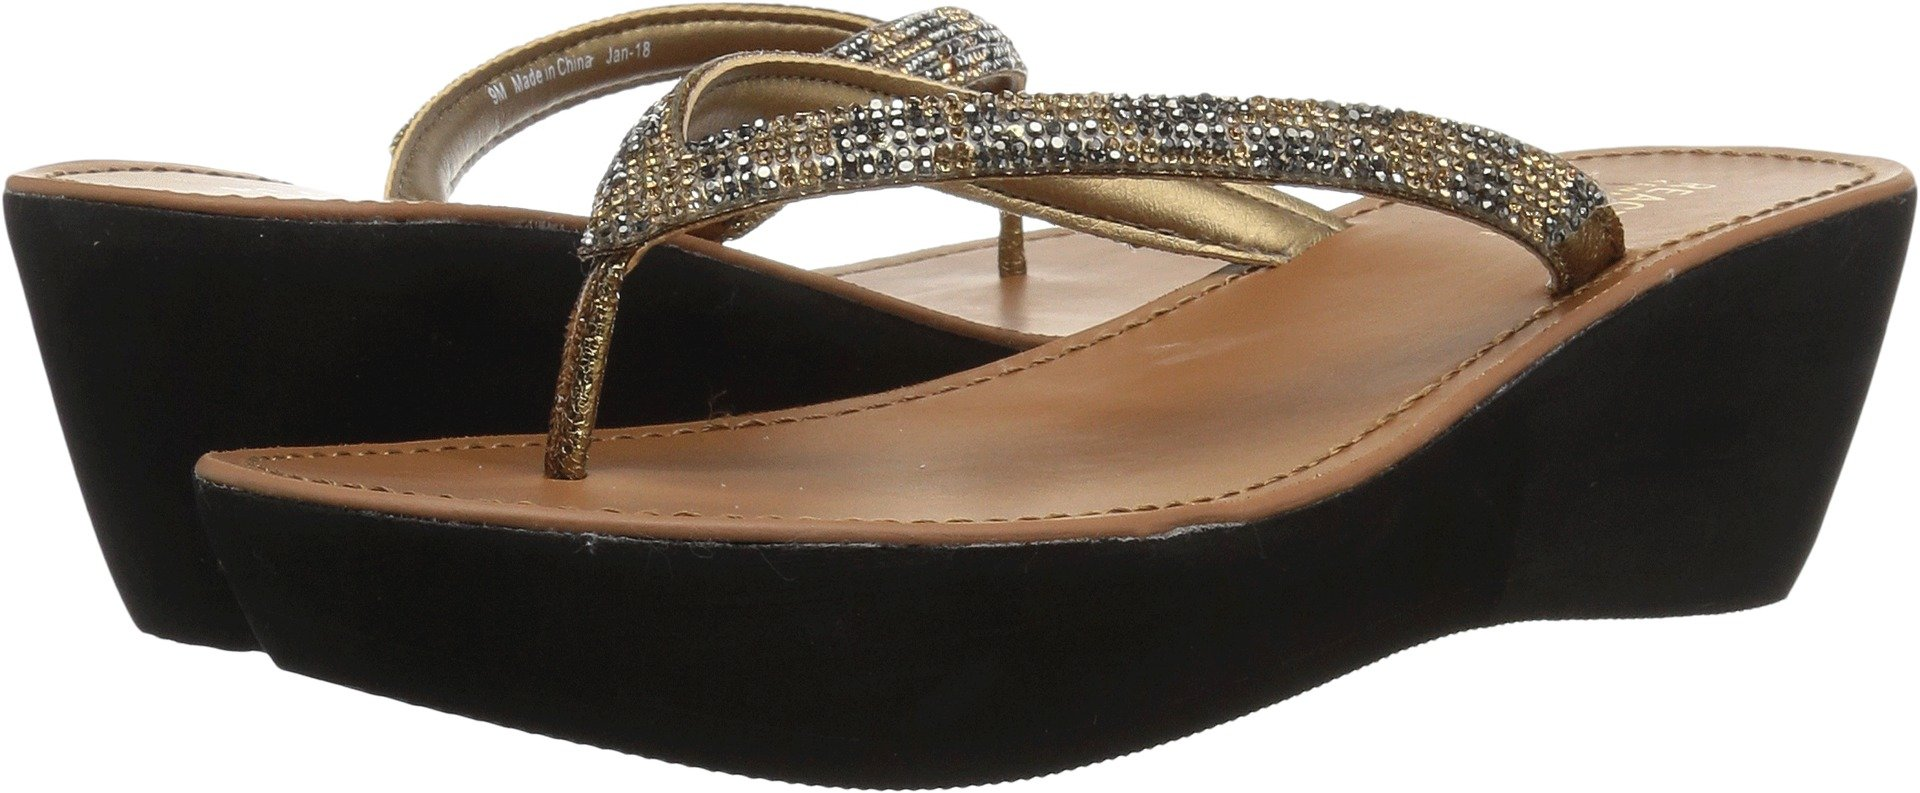 Kenneth Cole REACTION Women's Fine Sun Gltizy Platform Thong Wedge Sandal, Medal Gold, 7 M US